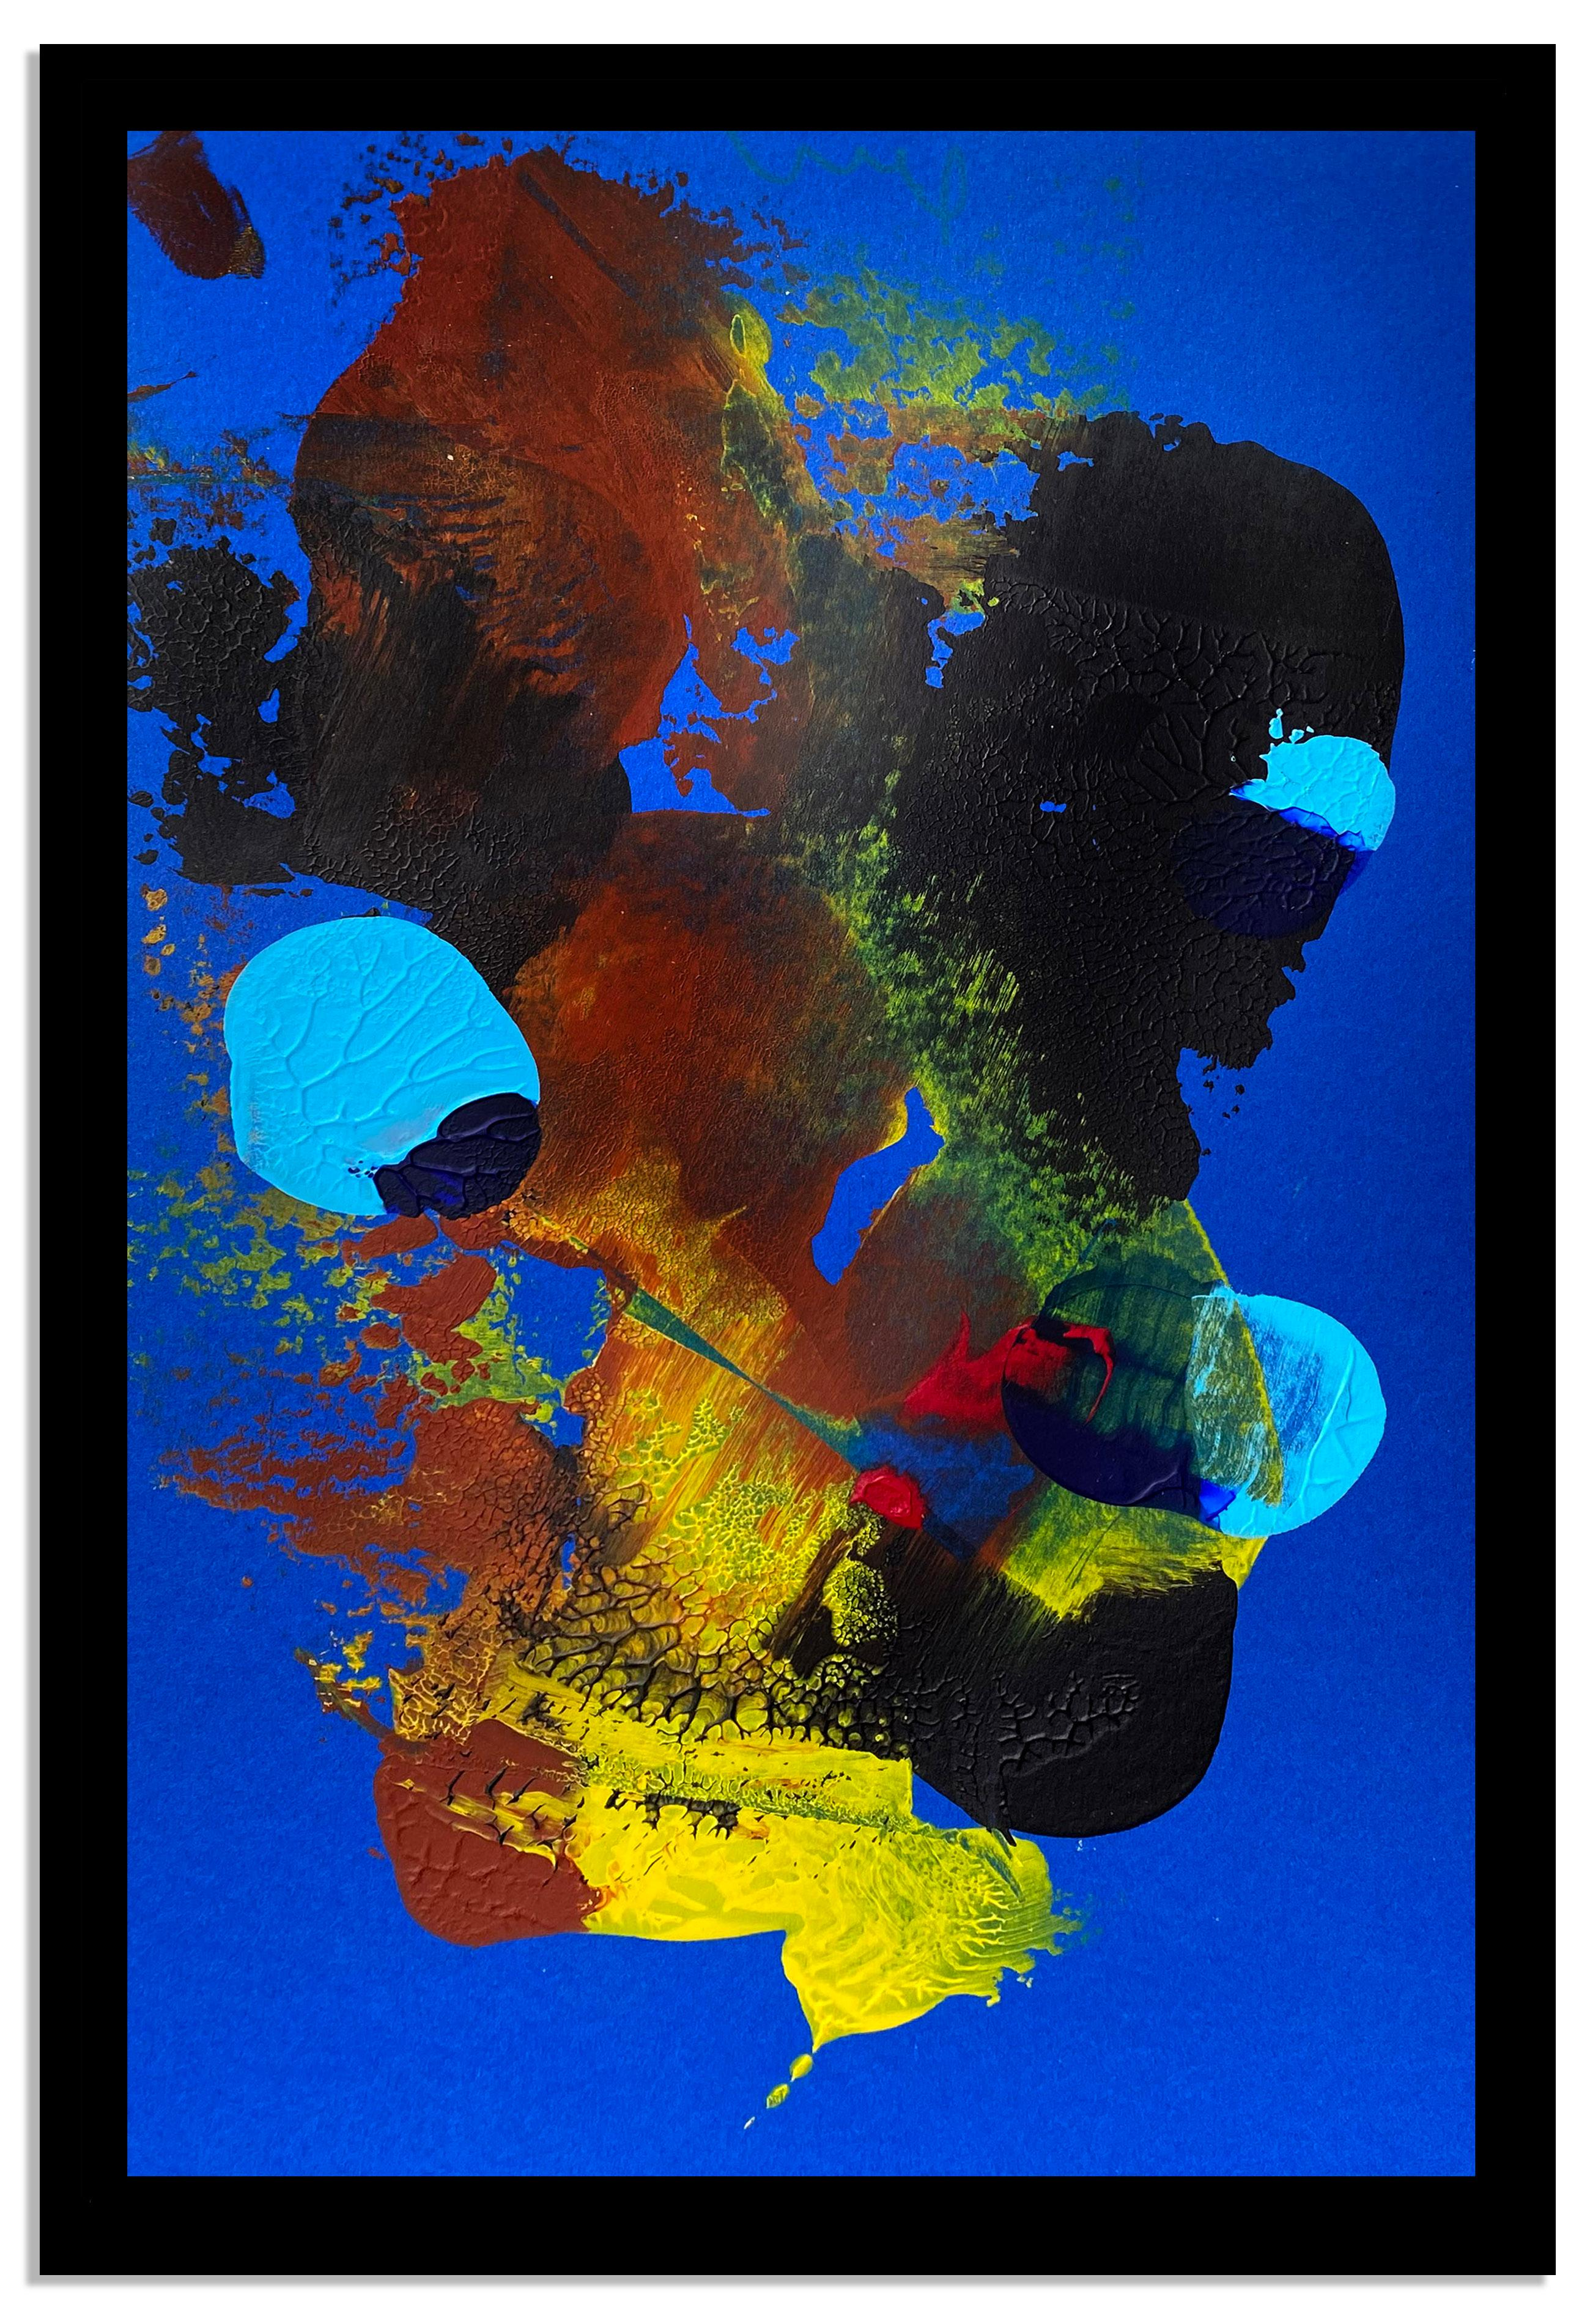 Contemporary Abstract Expressionist Painting Blue red Yellow Vibrant Framed rare